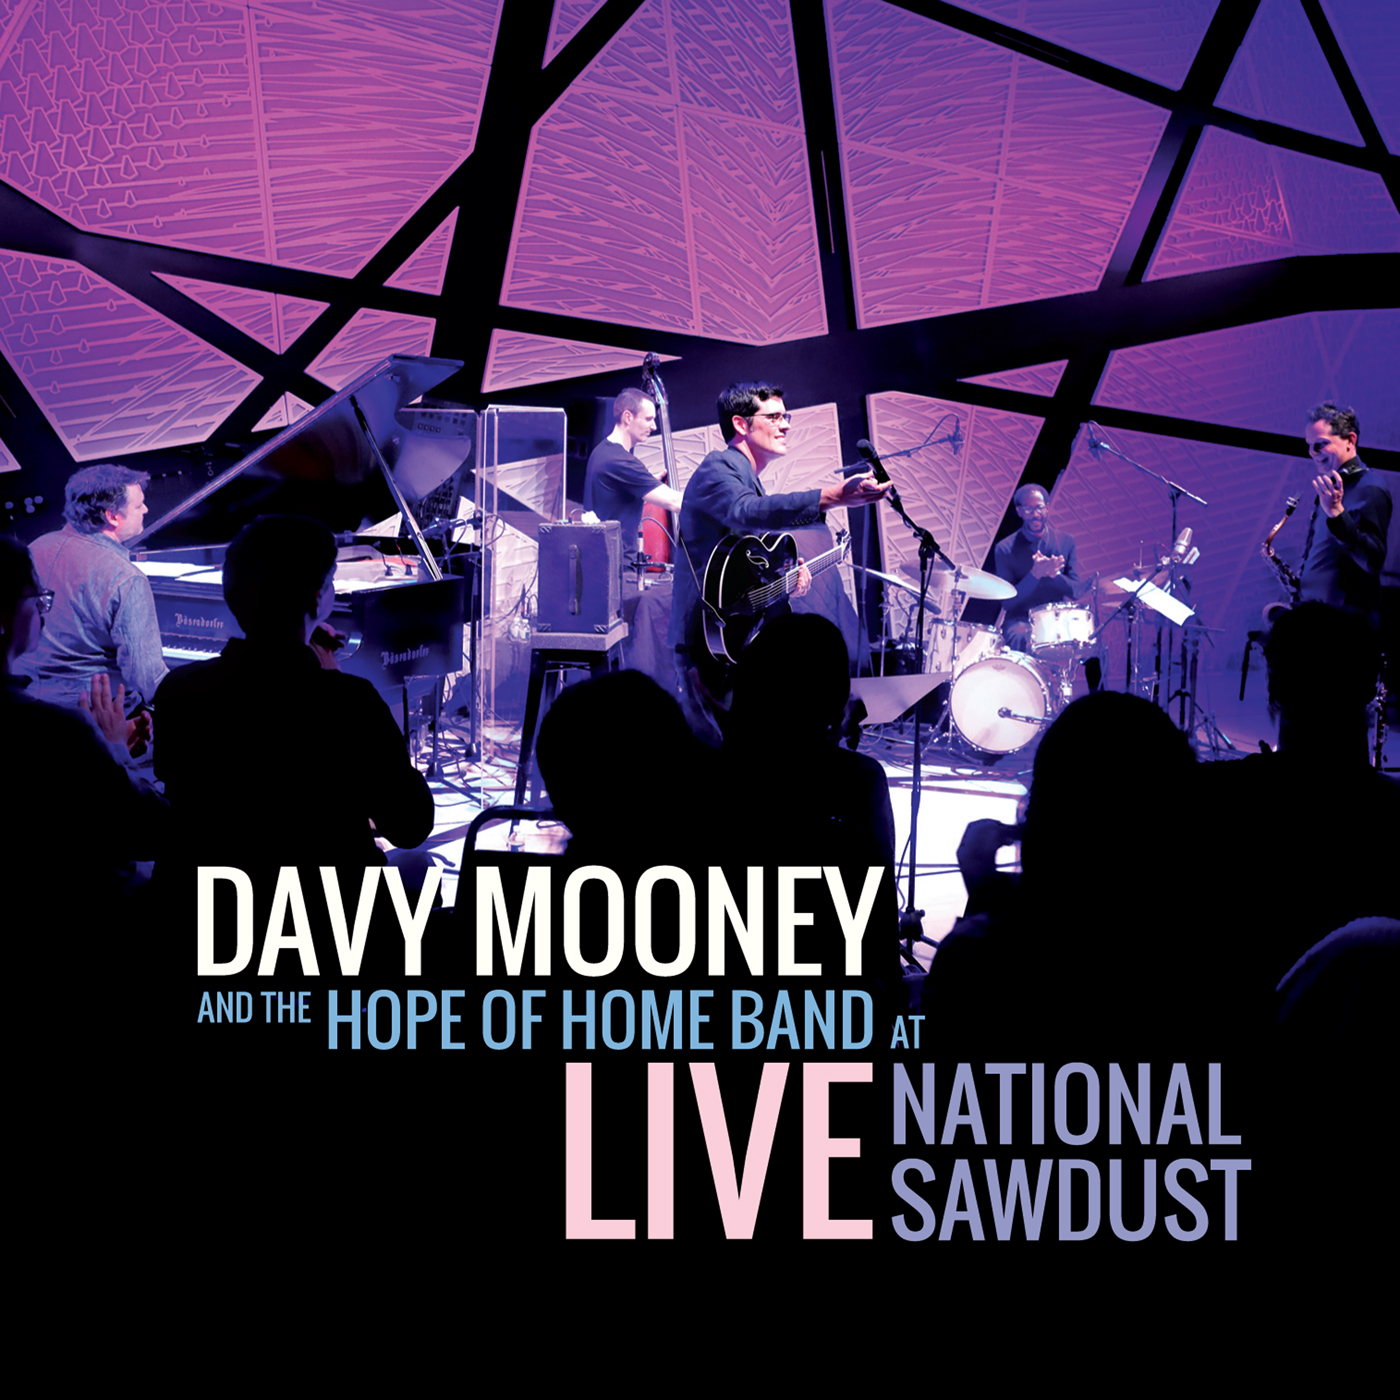 Live At National Sawdust  by Davy  Mooney cover